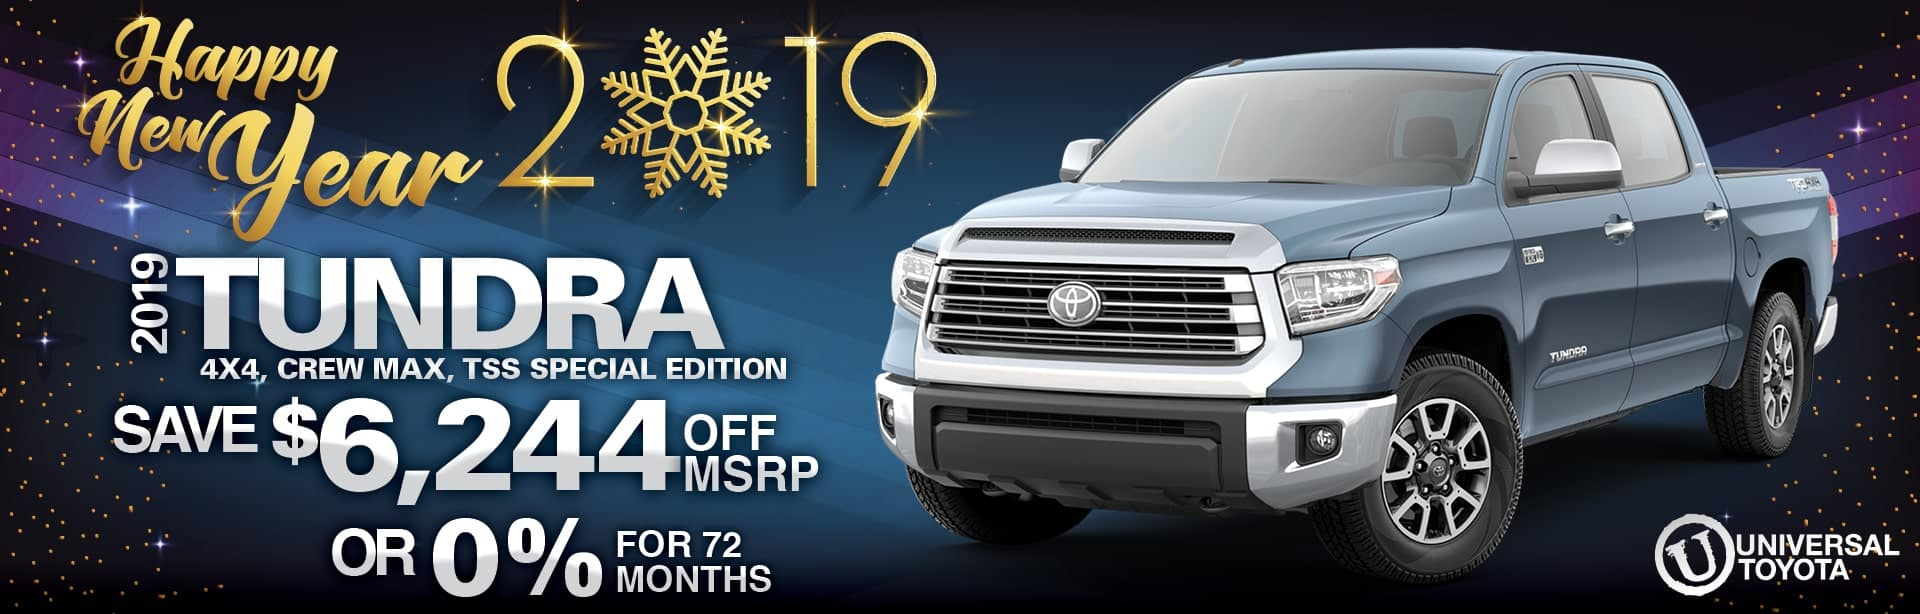 Universal Toyota Sales Service In San Antonio Tx Highlander Hybrid Headlamp Assembly Parts Diagram Price Plus Ttl And 150 Doc Fee Offer Expires 02 04 2019 0 For 72 Mo Available On All Tundras With Approved Credit Does Not Include